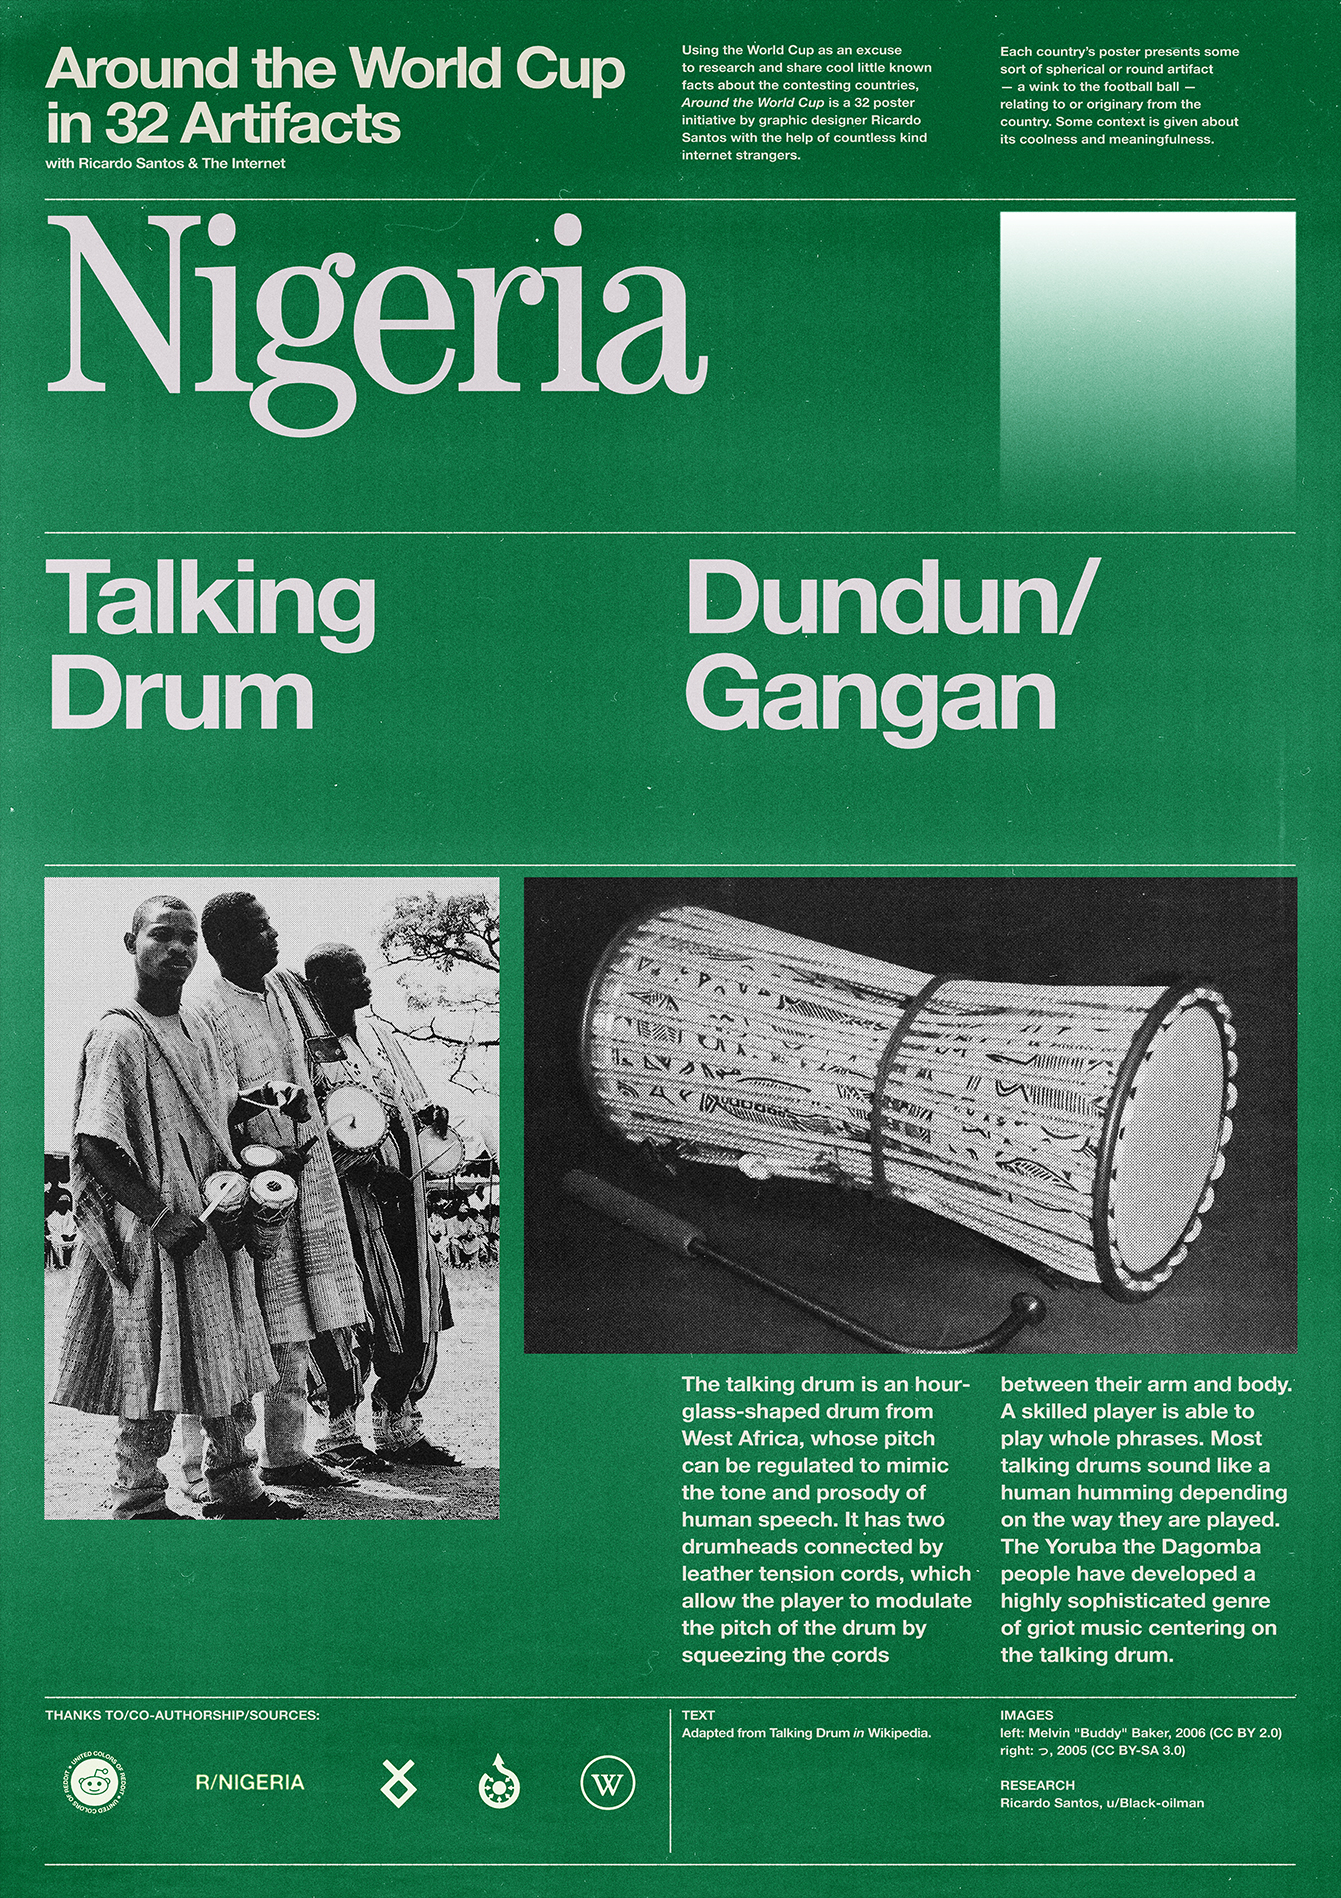 Nigeria poster: Talking Drum